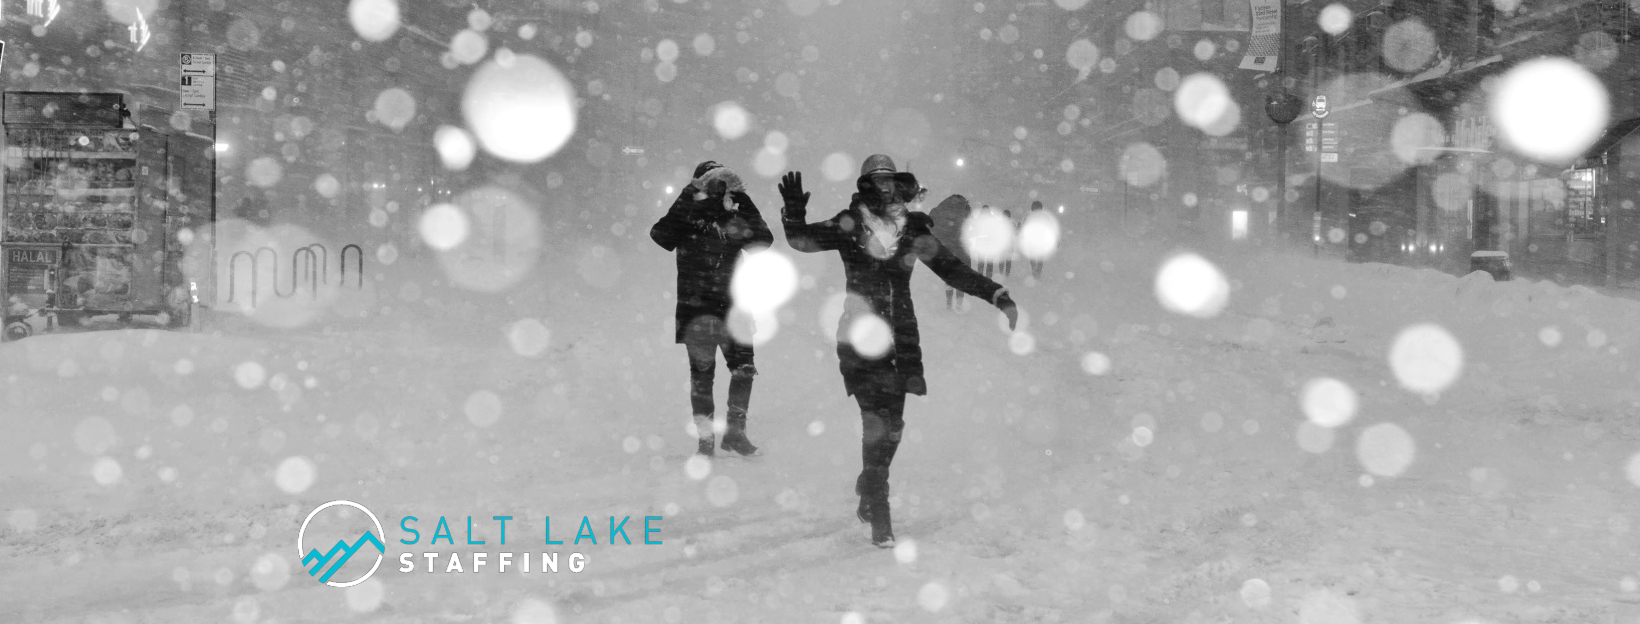 Snow Day! Is Your Business Prepared for Snow Days?